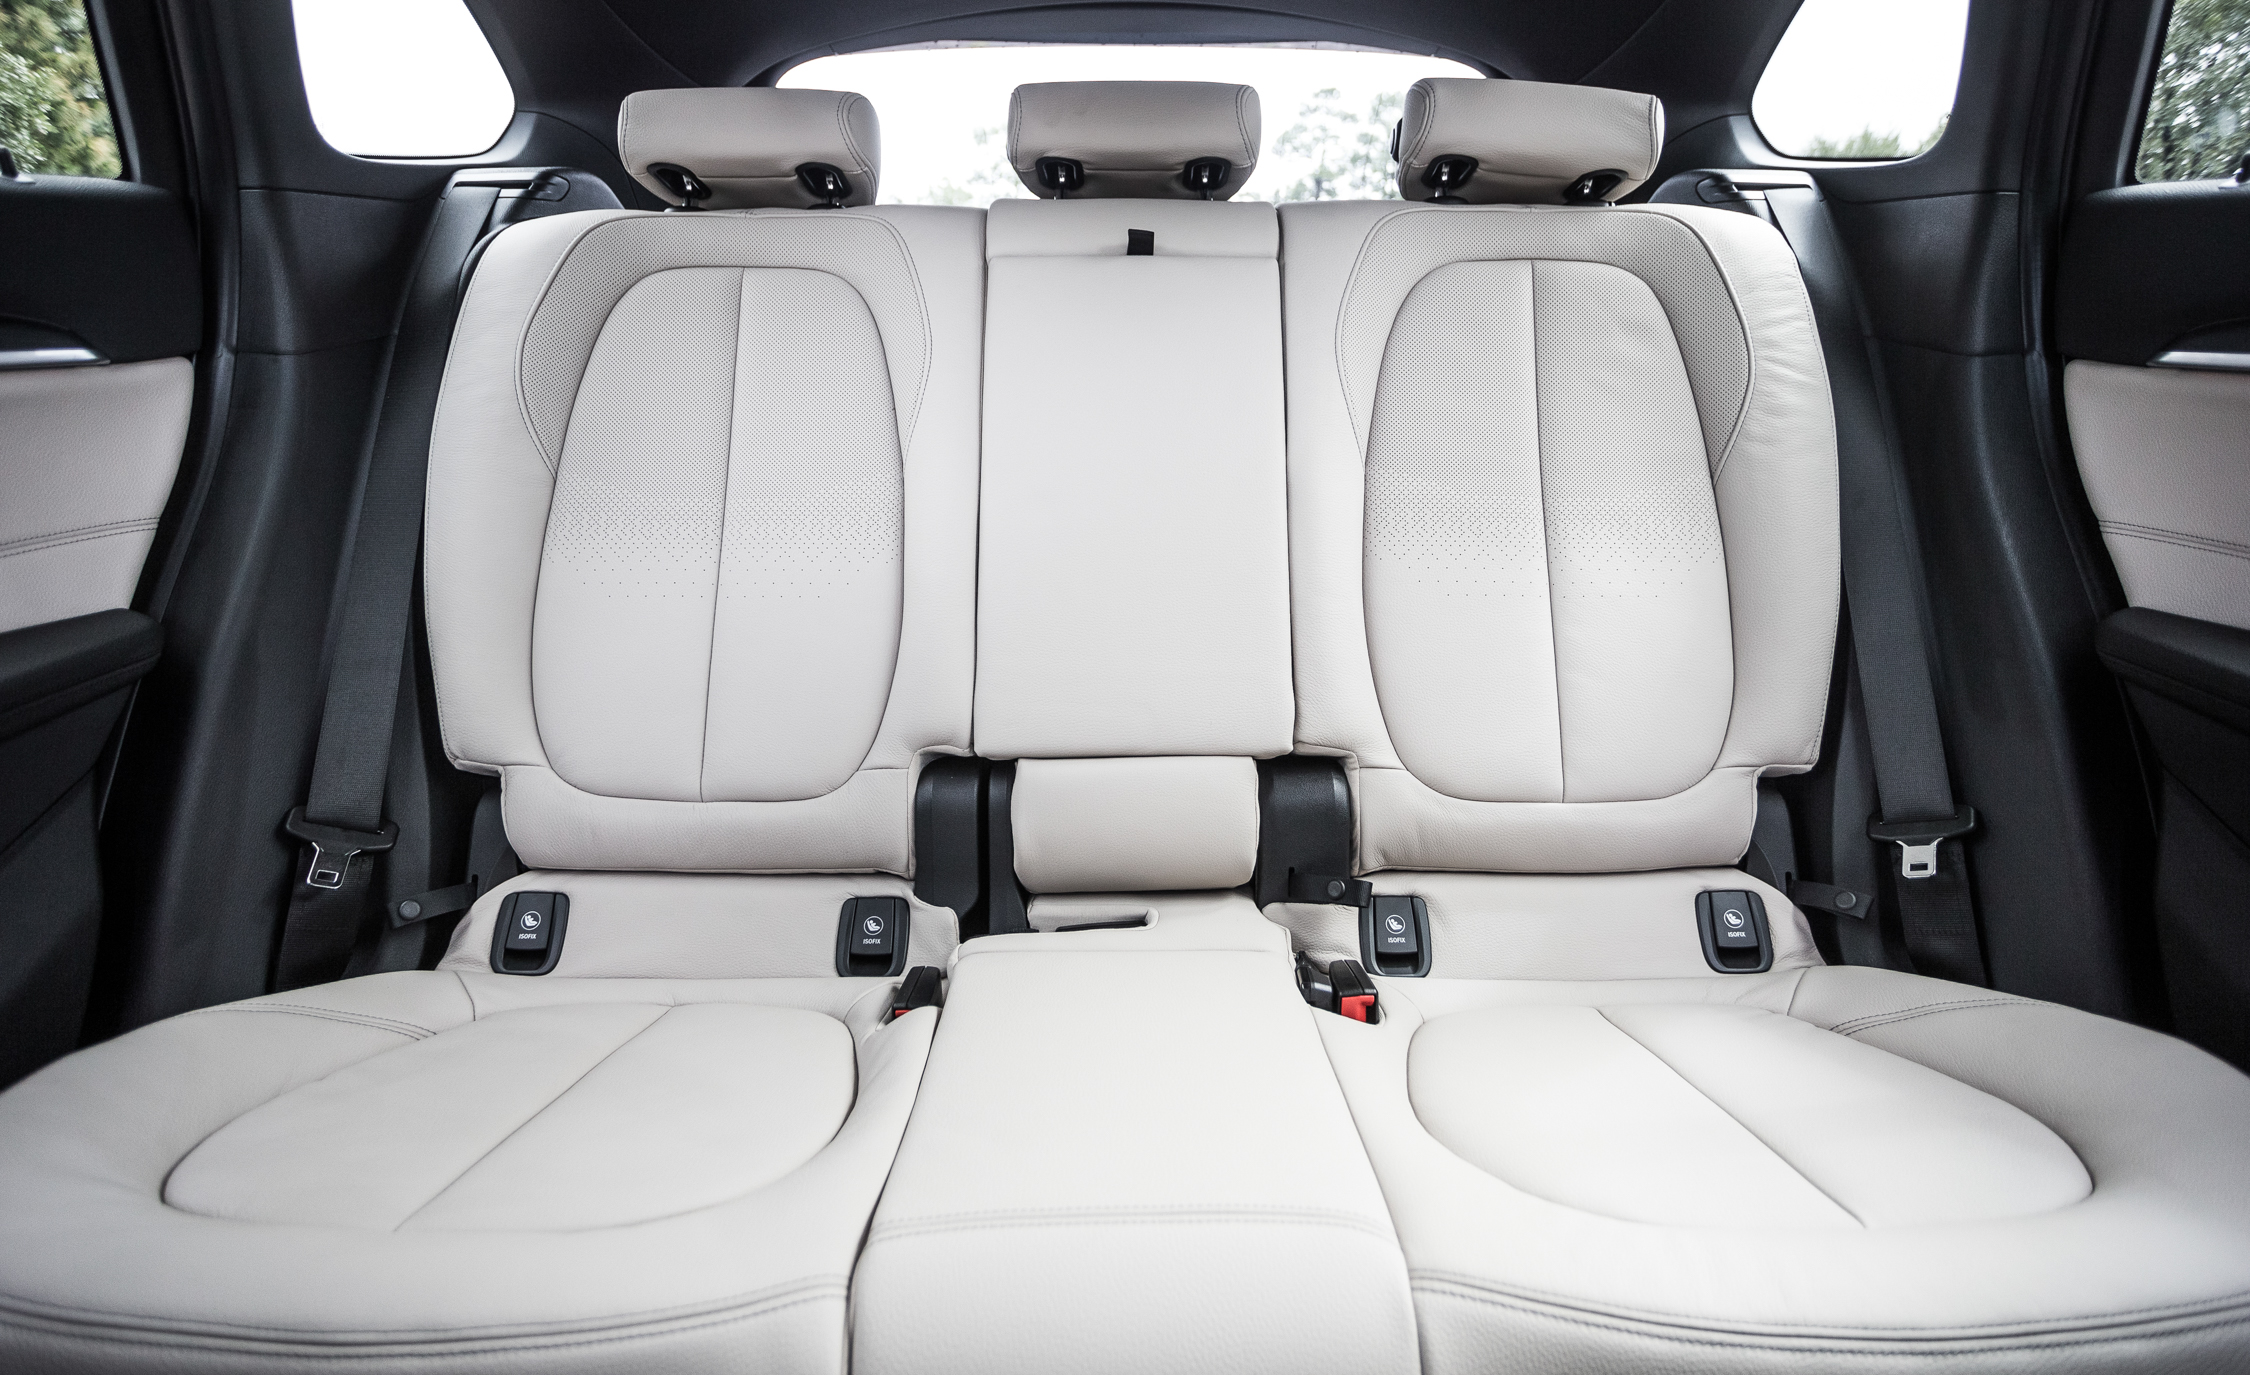 2016 BMW X1 Interior Seats Rear Passengers (View 17 of 36)